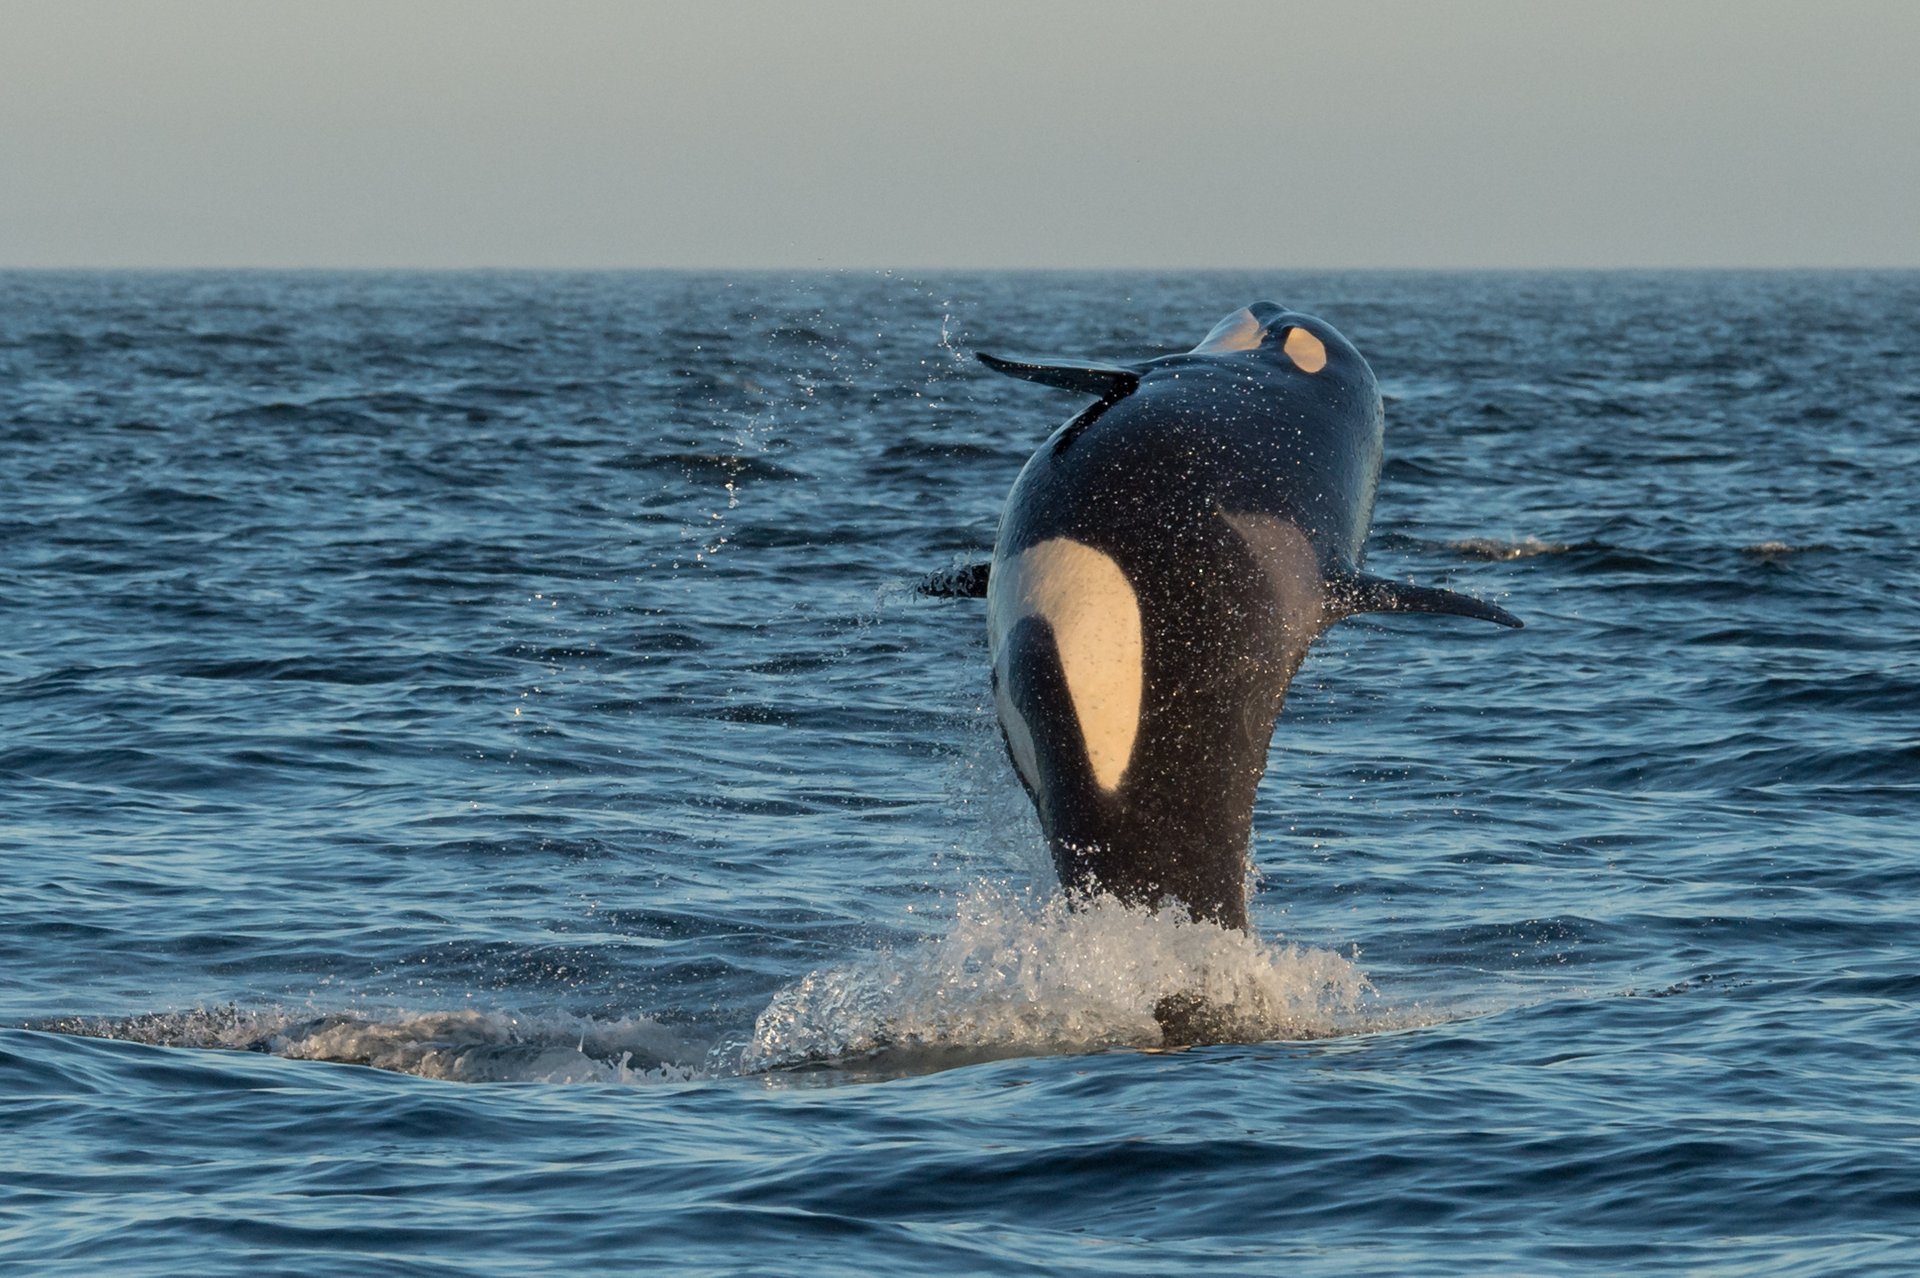 Whale Watching in British Columbia 2020 - Best Time